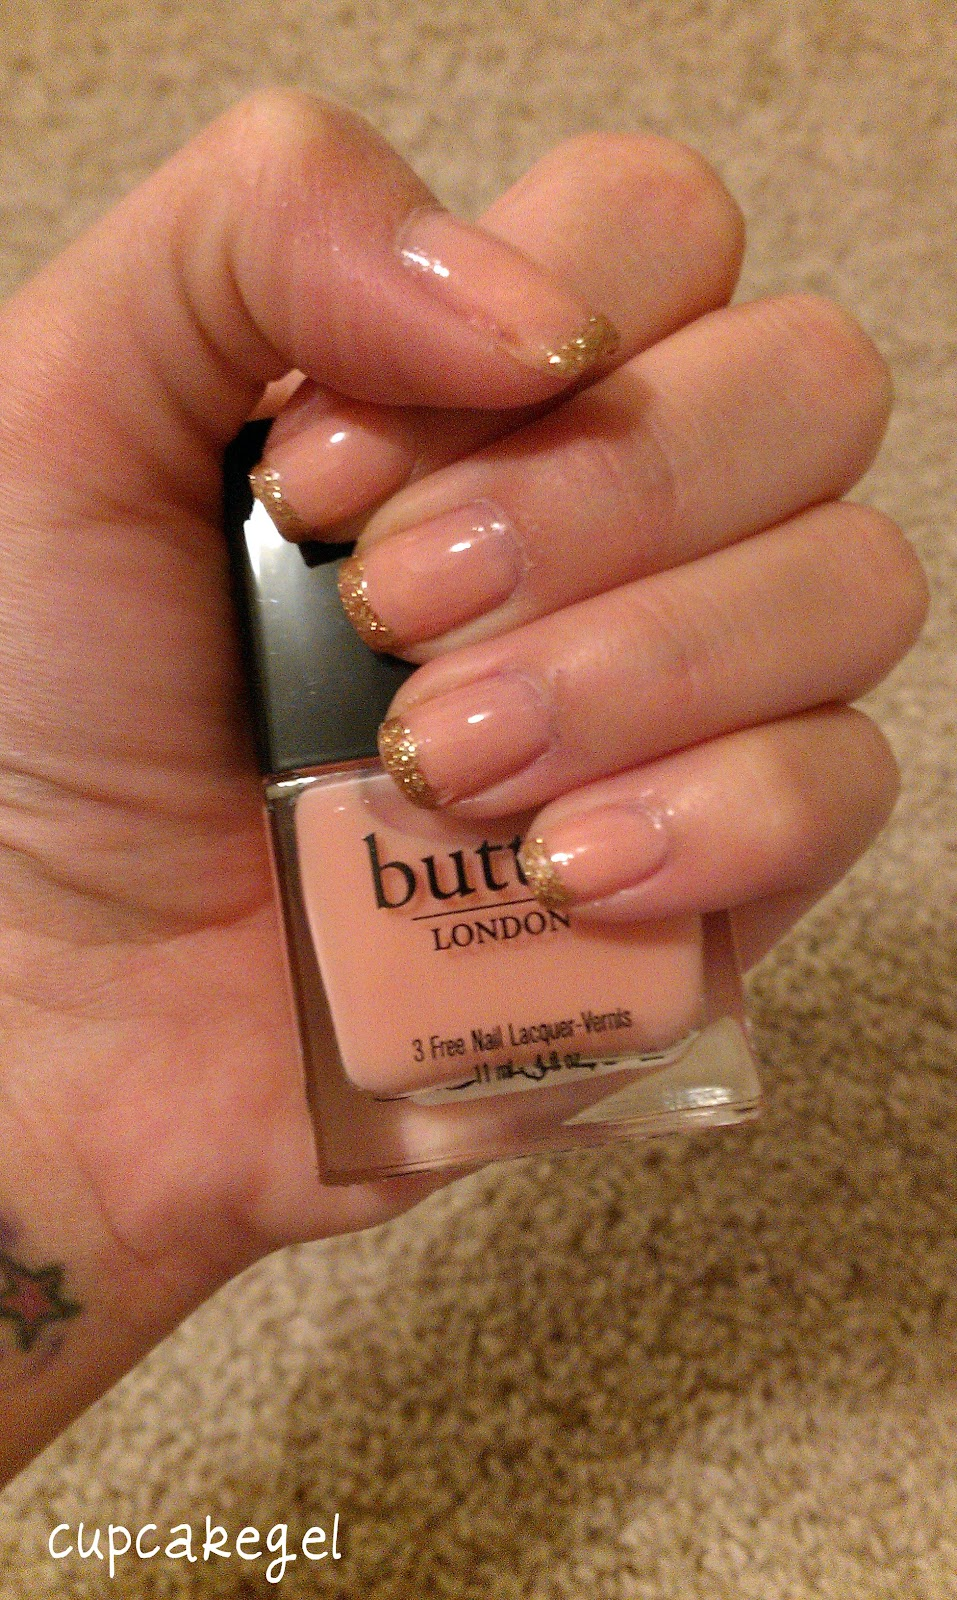 beauty is truth, truth beauty.: Perfect Fall/Winter Nails.